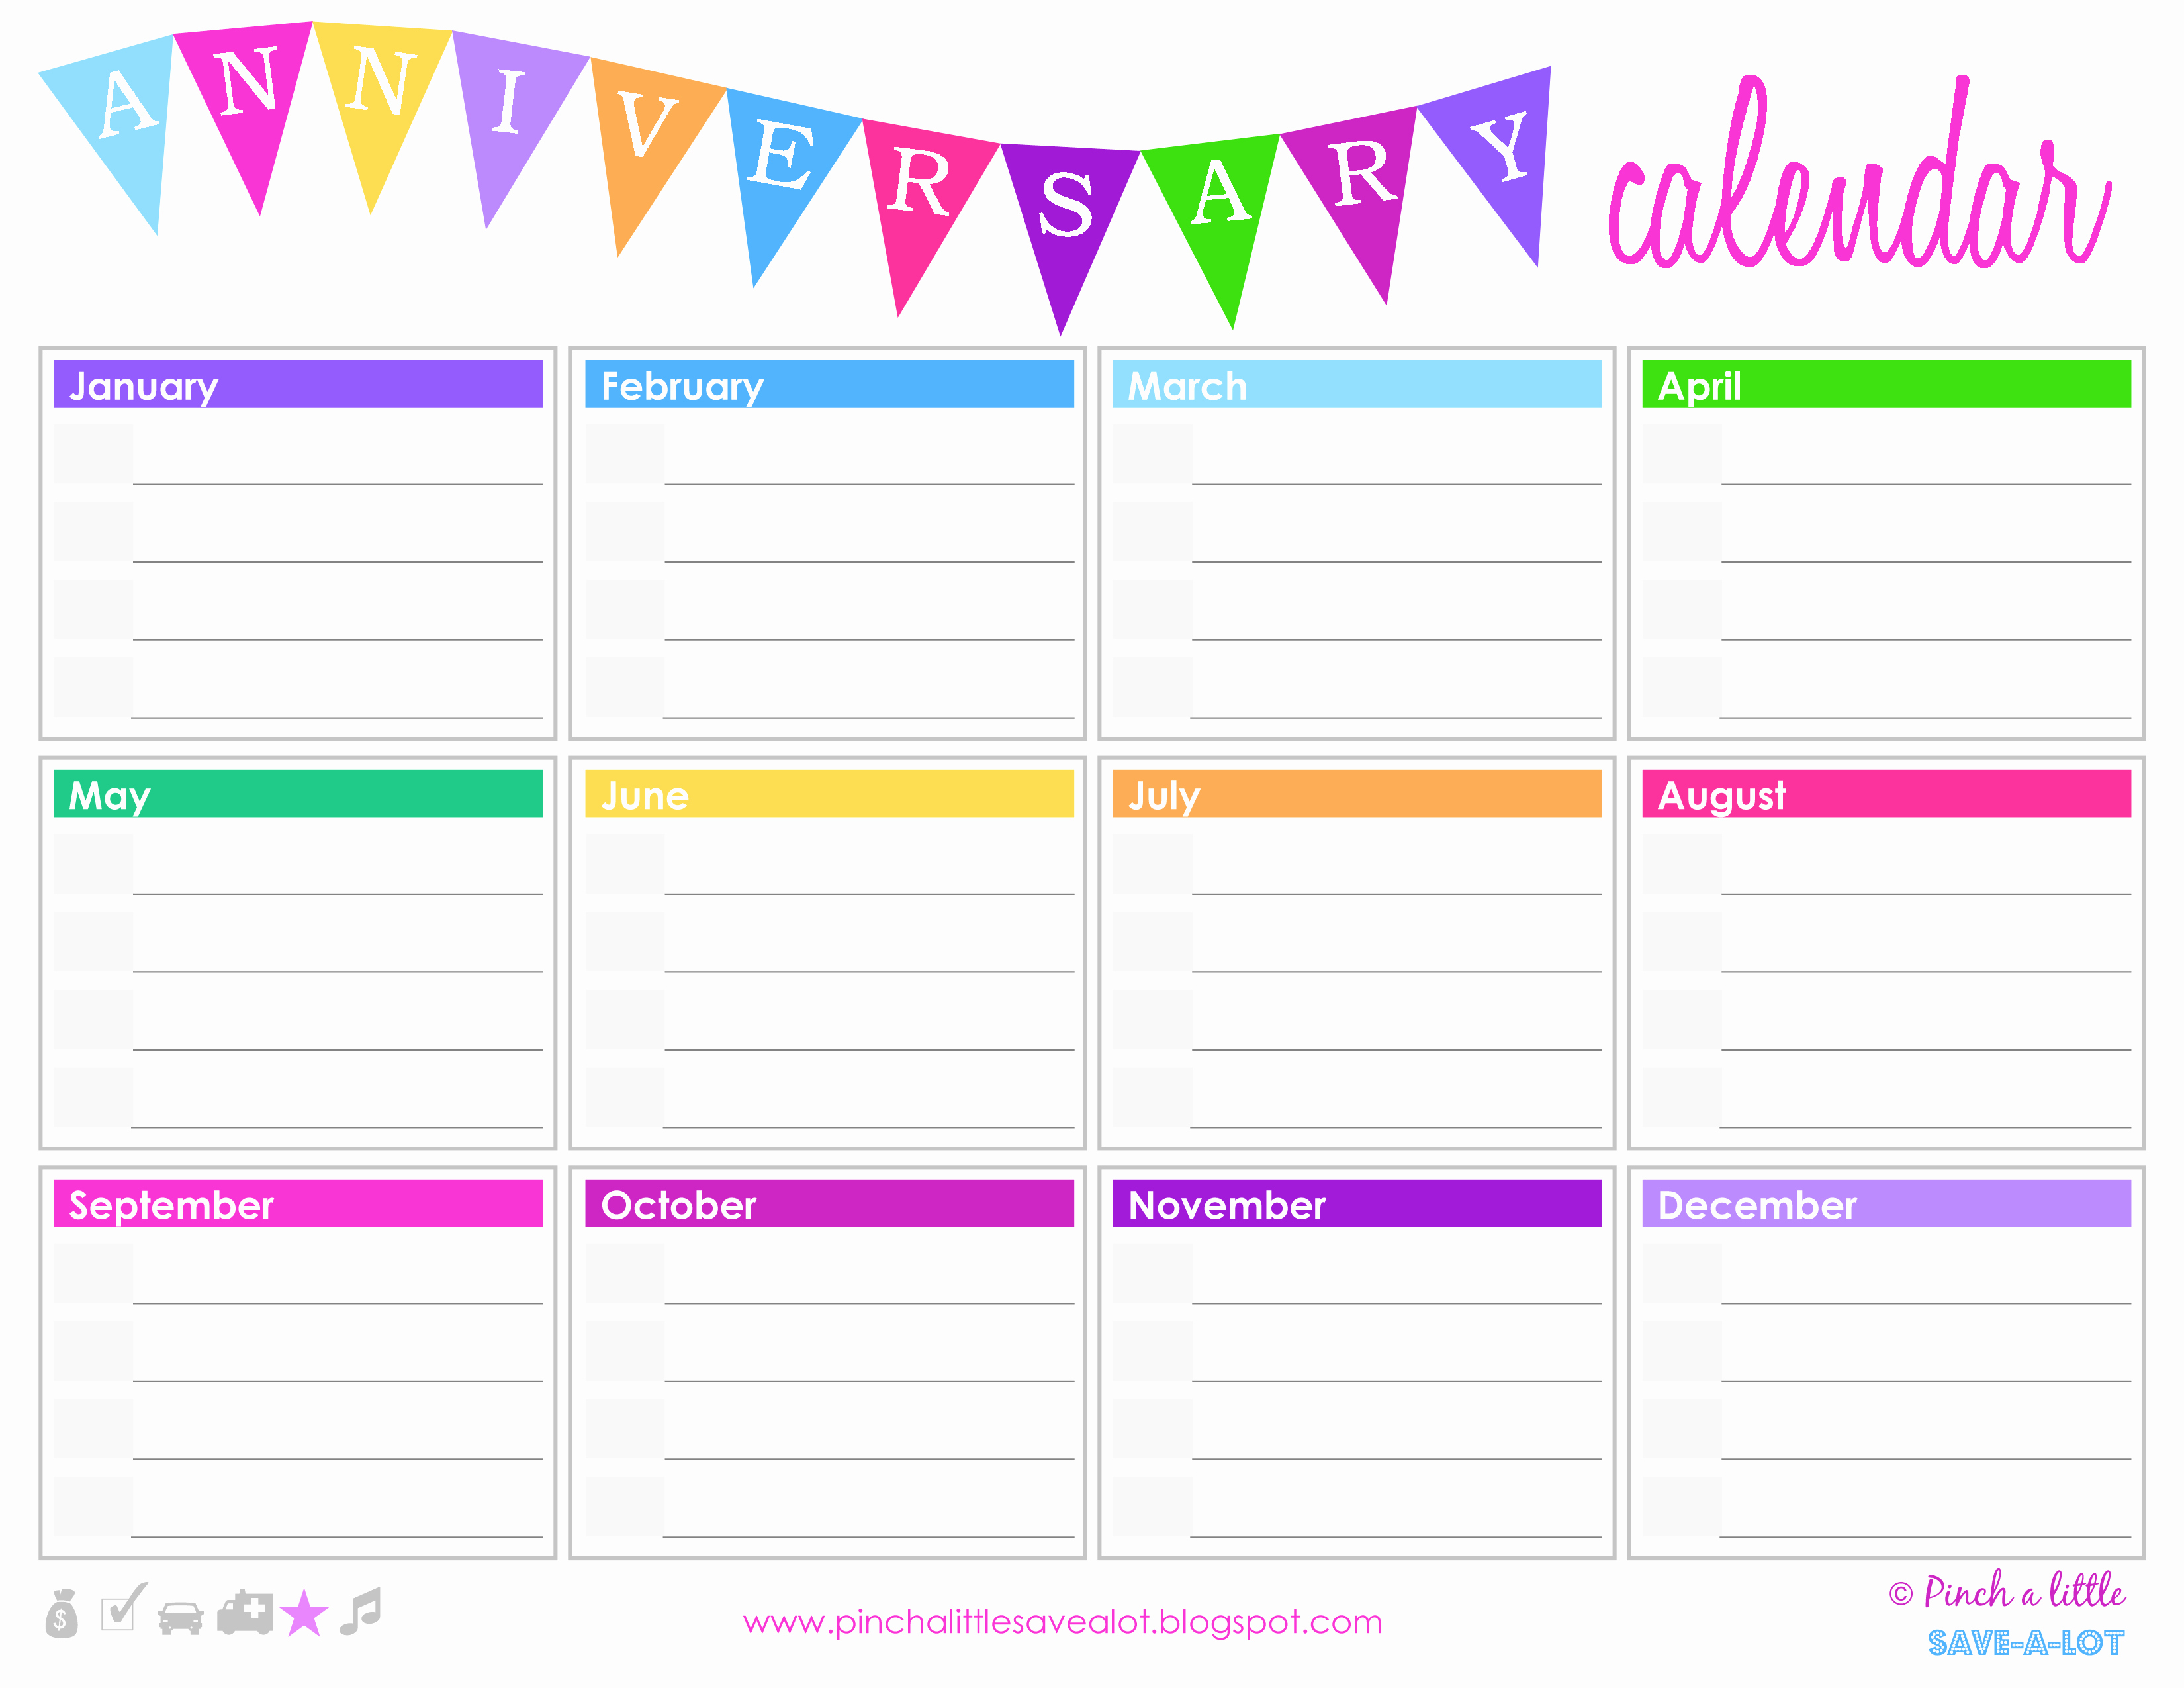 Birthday and Anniversary Calendar Template Beautiful Free Birthday Anniversary Calendar